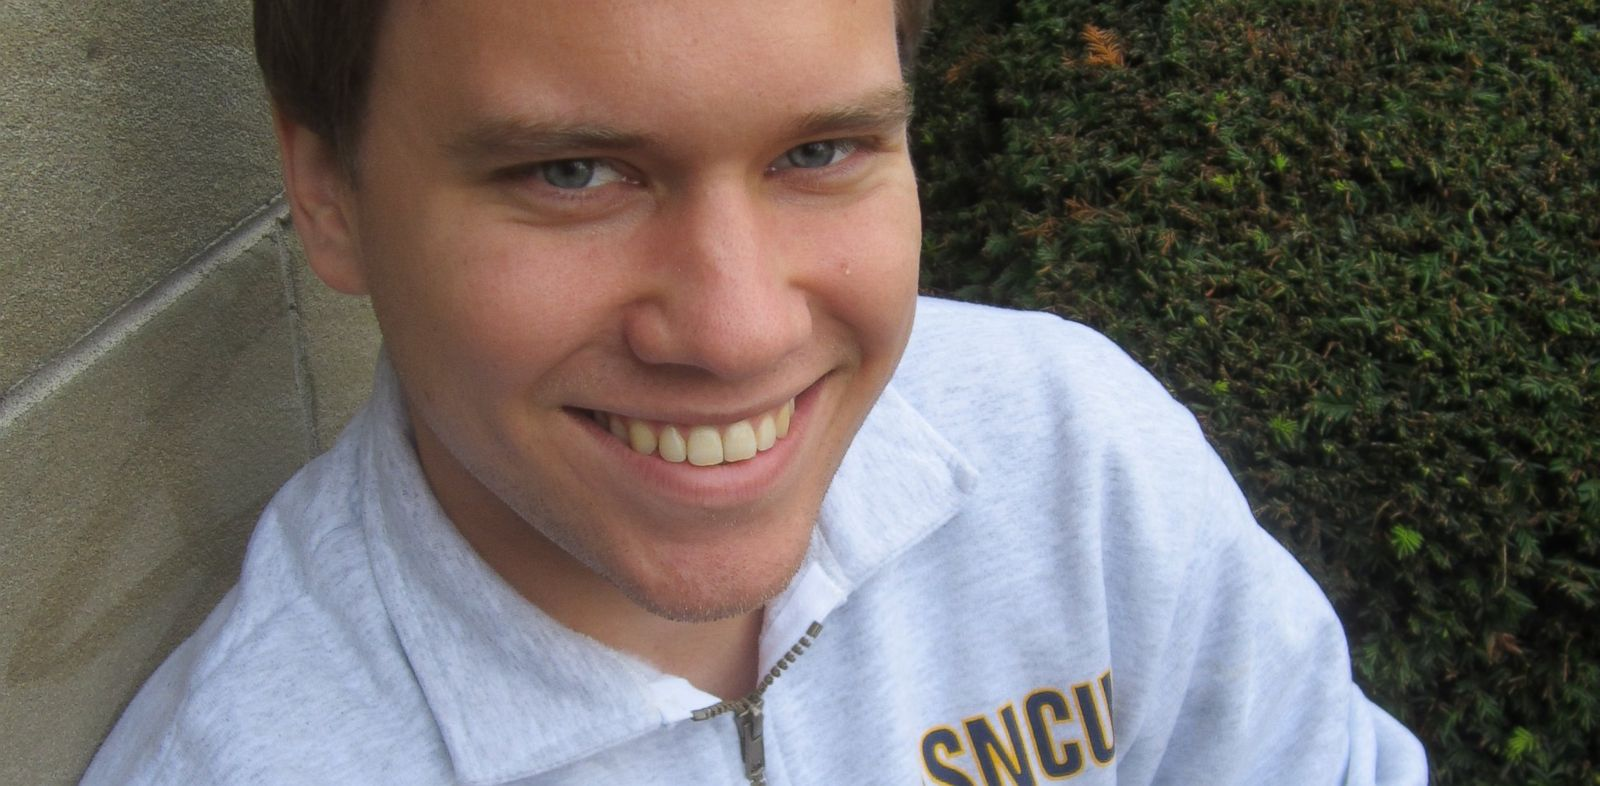 PHOTO: Eric Fromm, a student from a Christian university in Oregon, revealed hes an atheist.